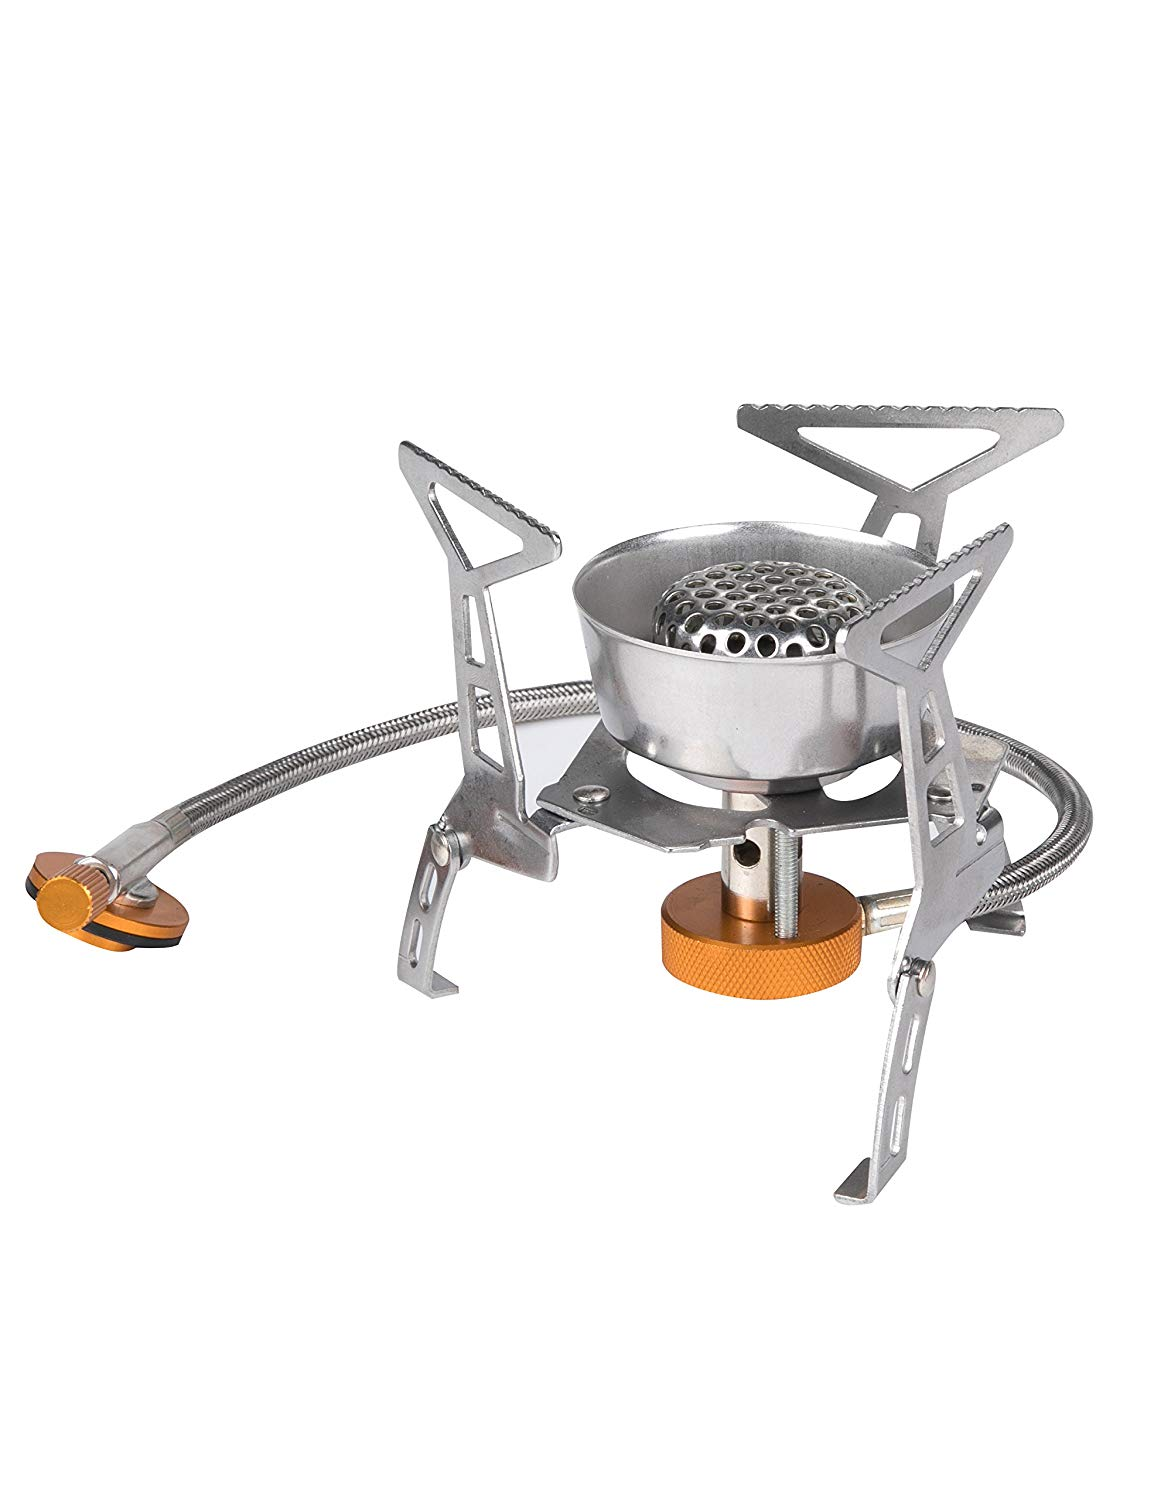 EL INDIO Portable Camping Gas Stove with Piezo Ignition Foldable Lightweight Backpacking Stove with Carrying Case 3200W